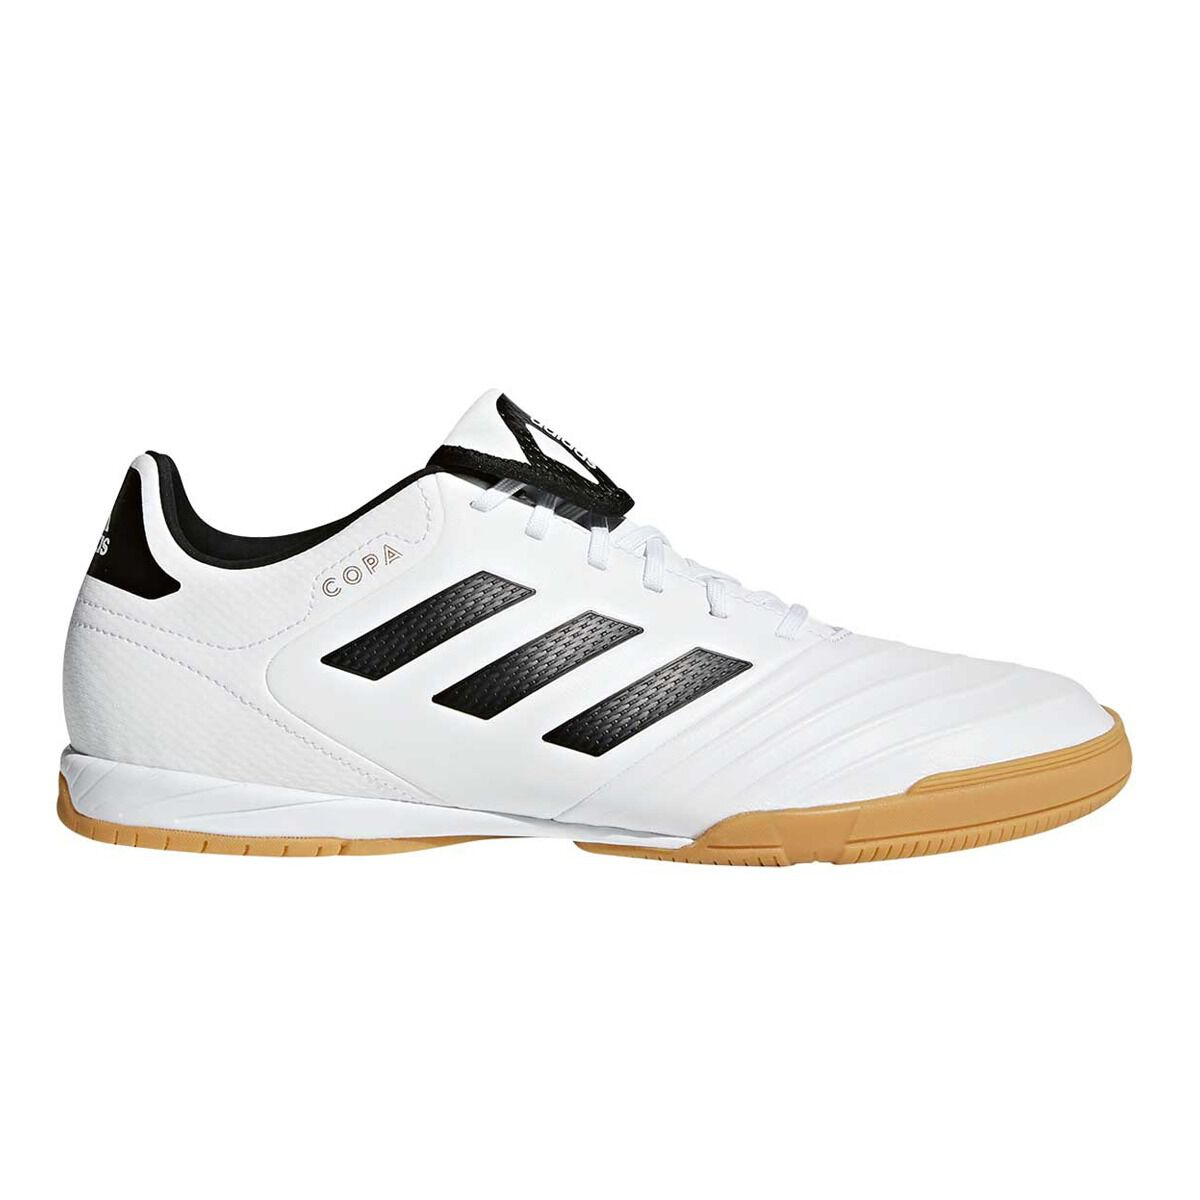 90ae678f3 ... low cost adidas copa tango 18.3 mens indoor soccer shoes white black us  10.5 adult white ...